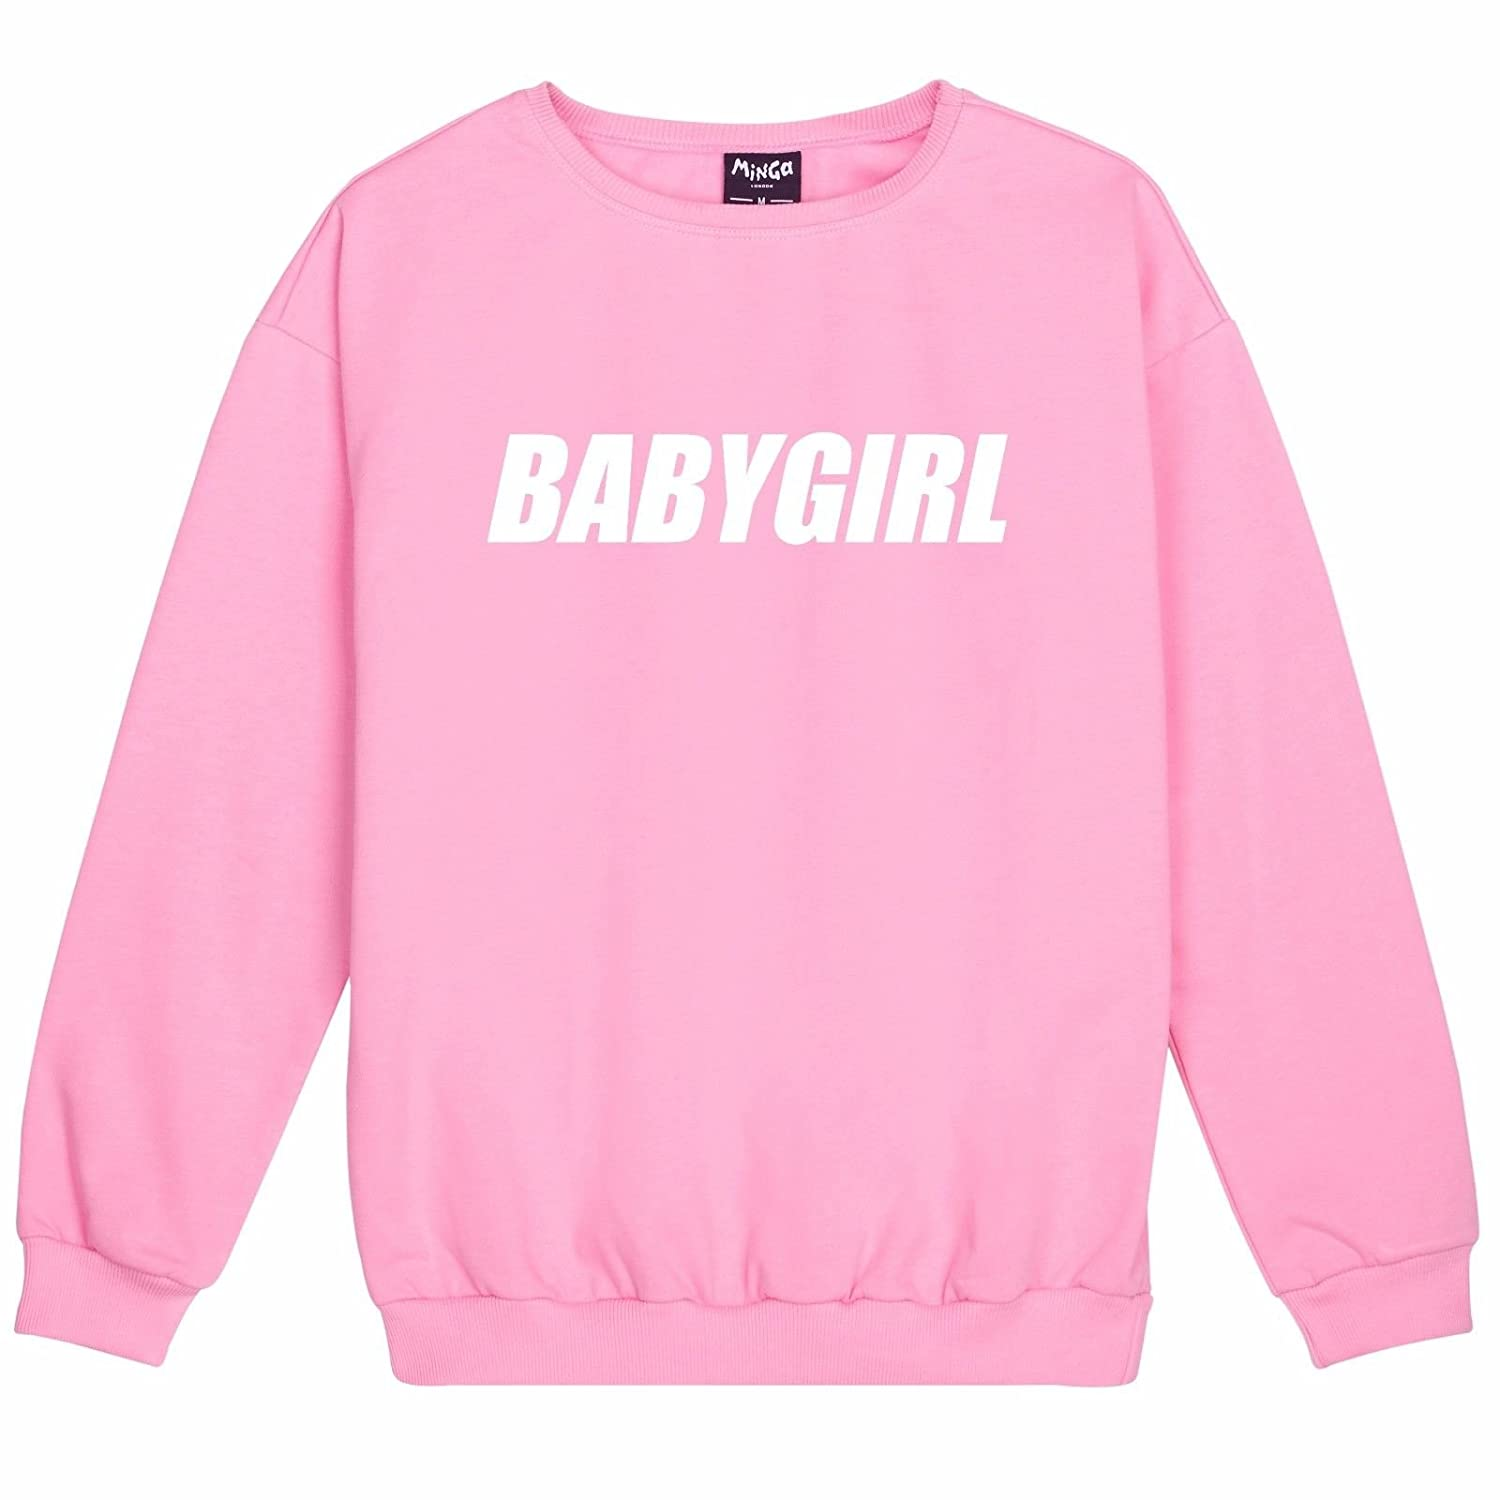 Babygirl Sweater Top Women's Fun Tumblr Cute Pink at Amazon ...